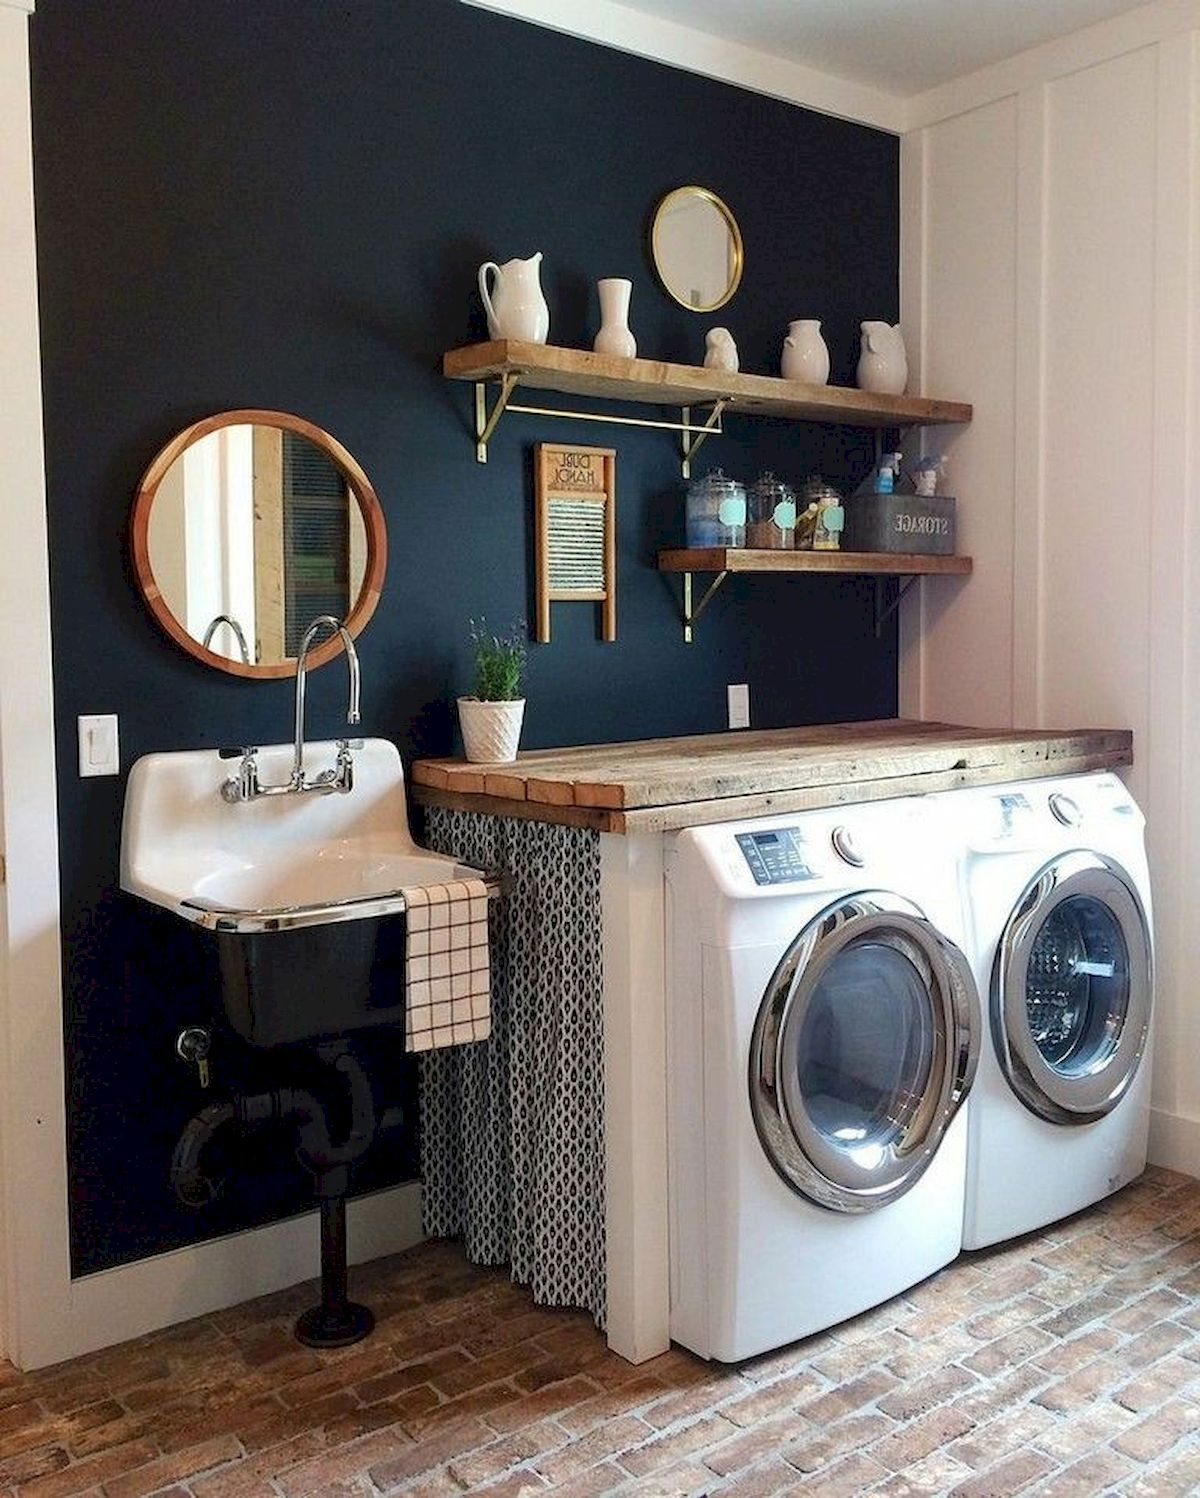 40 Cozy Laundry Room Design And Decor Ideas For Your Home (3)